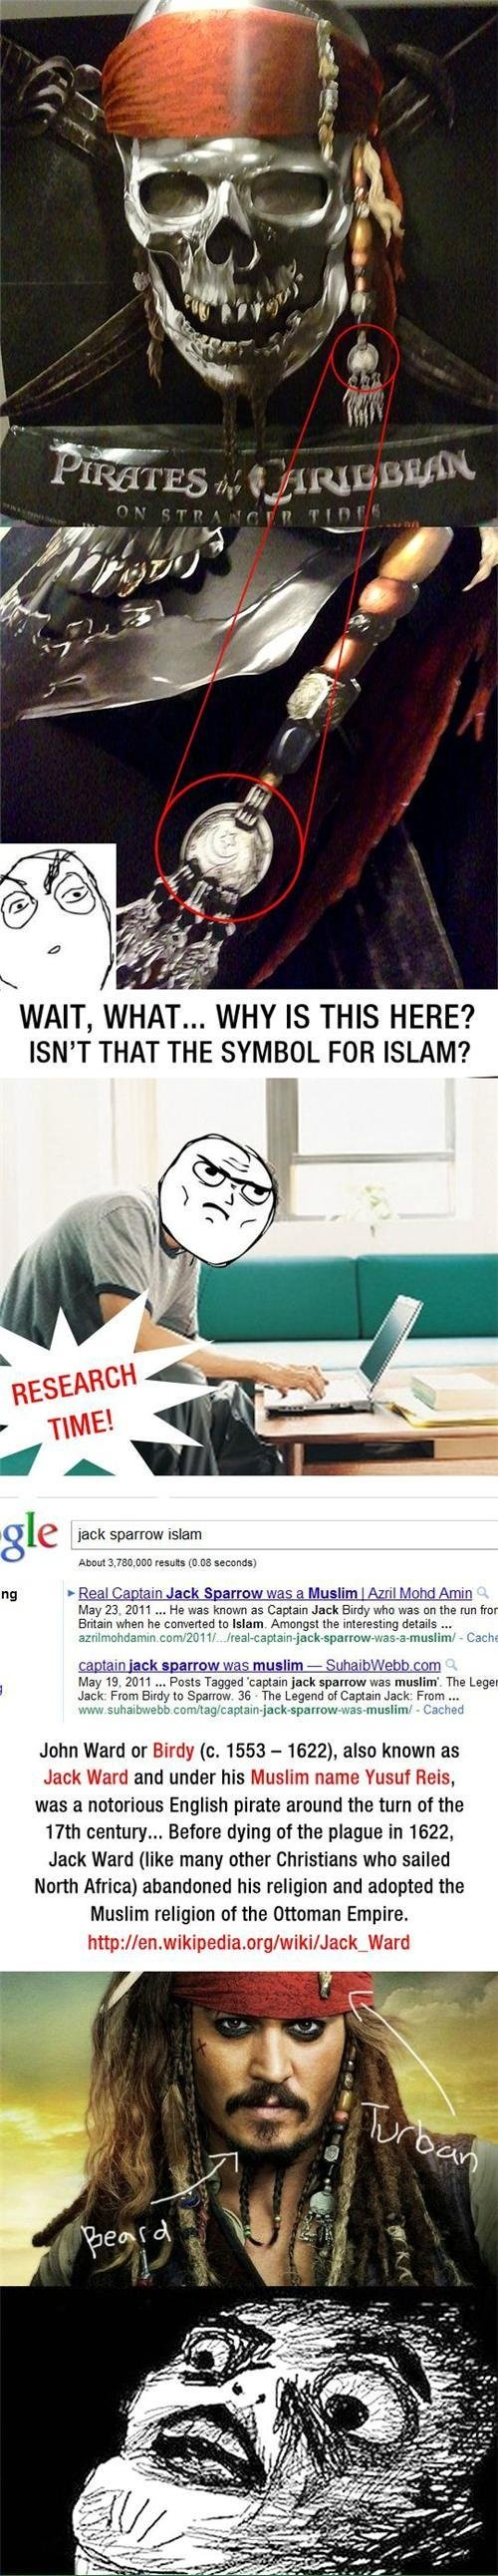 Jack Sparrow is a muslim?. Don't forget to thumb!!. WAIT, T... WHY IS THIS HERE? ISN' T THAT THE SYMBOL FOR ISLAM? ct, , lill jest: sparrow Elam About 'gojira,